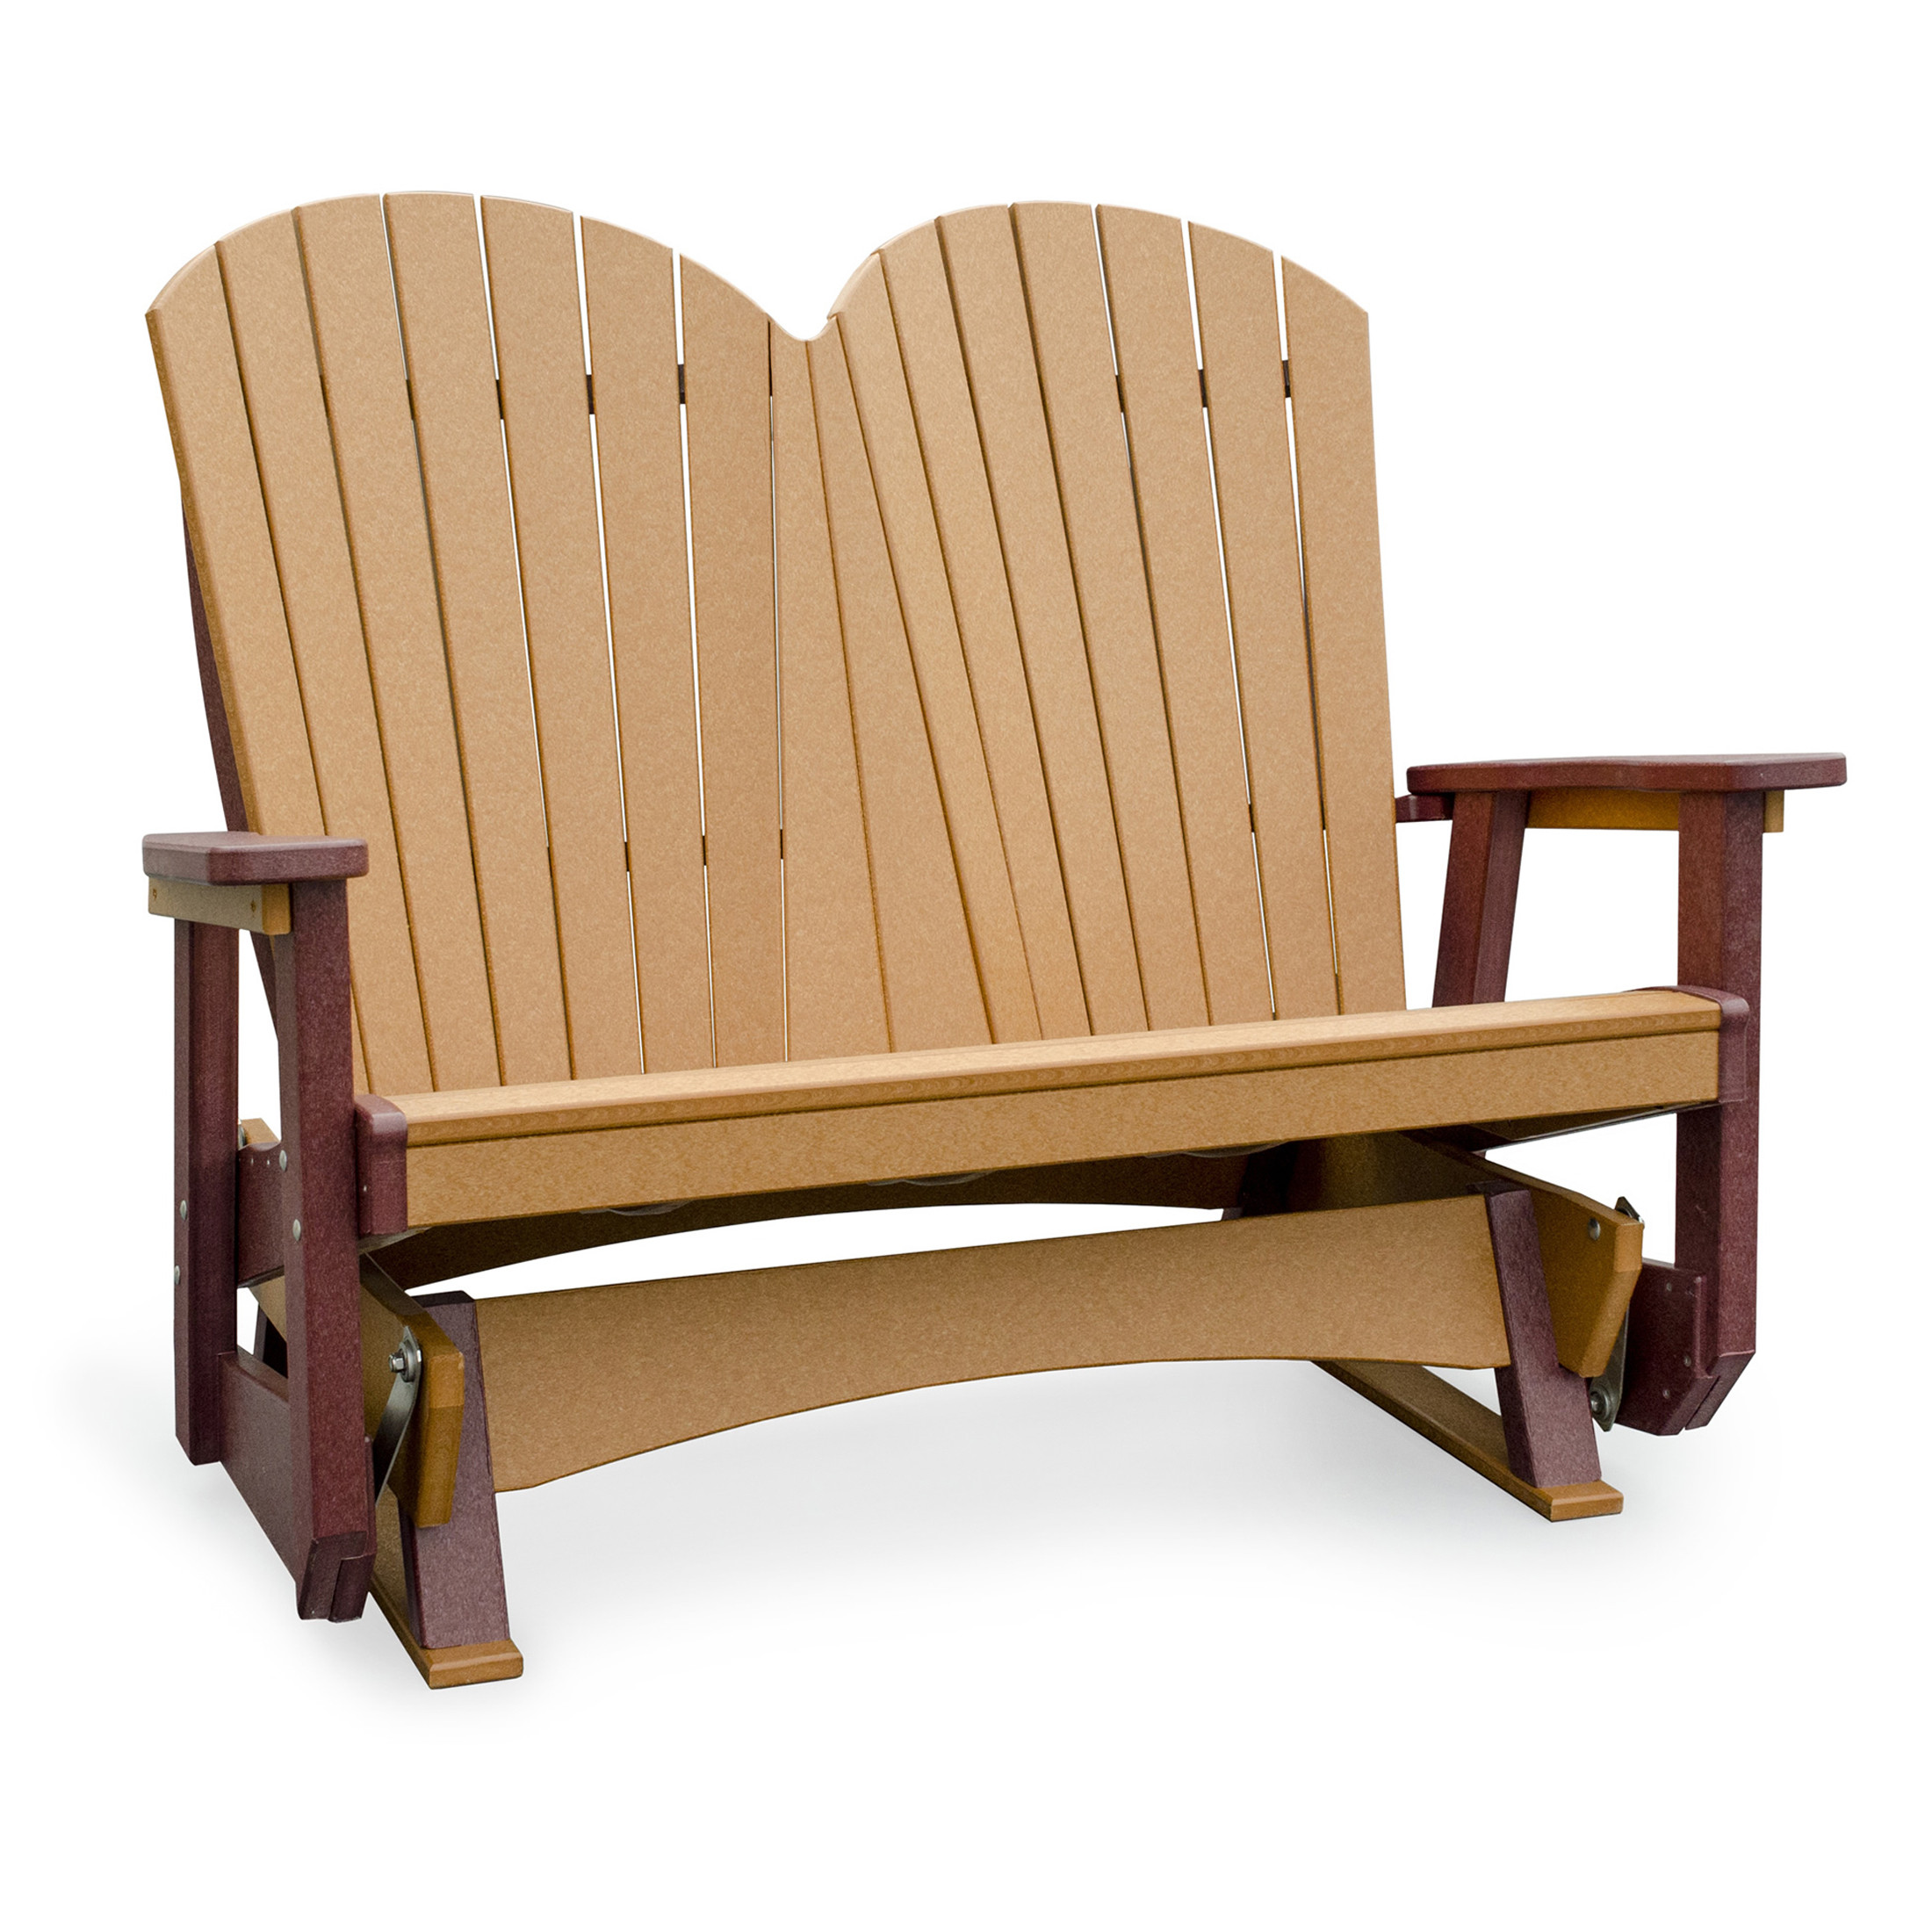 benches poly weather image bench resistant porch outdoor glider